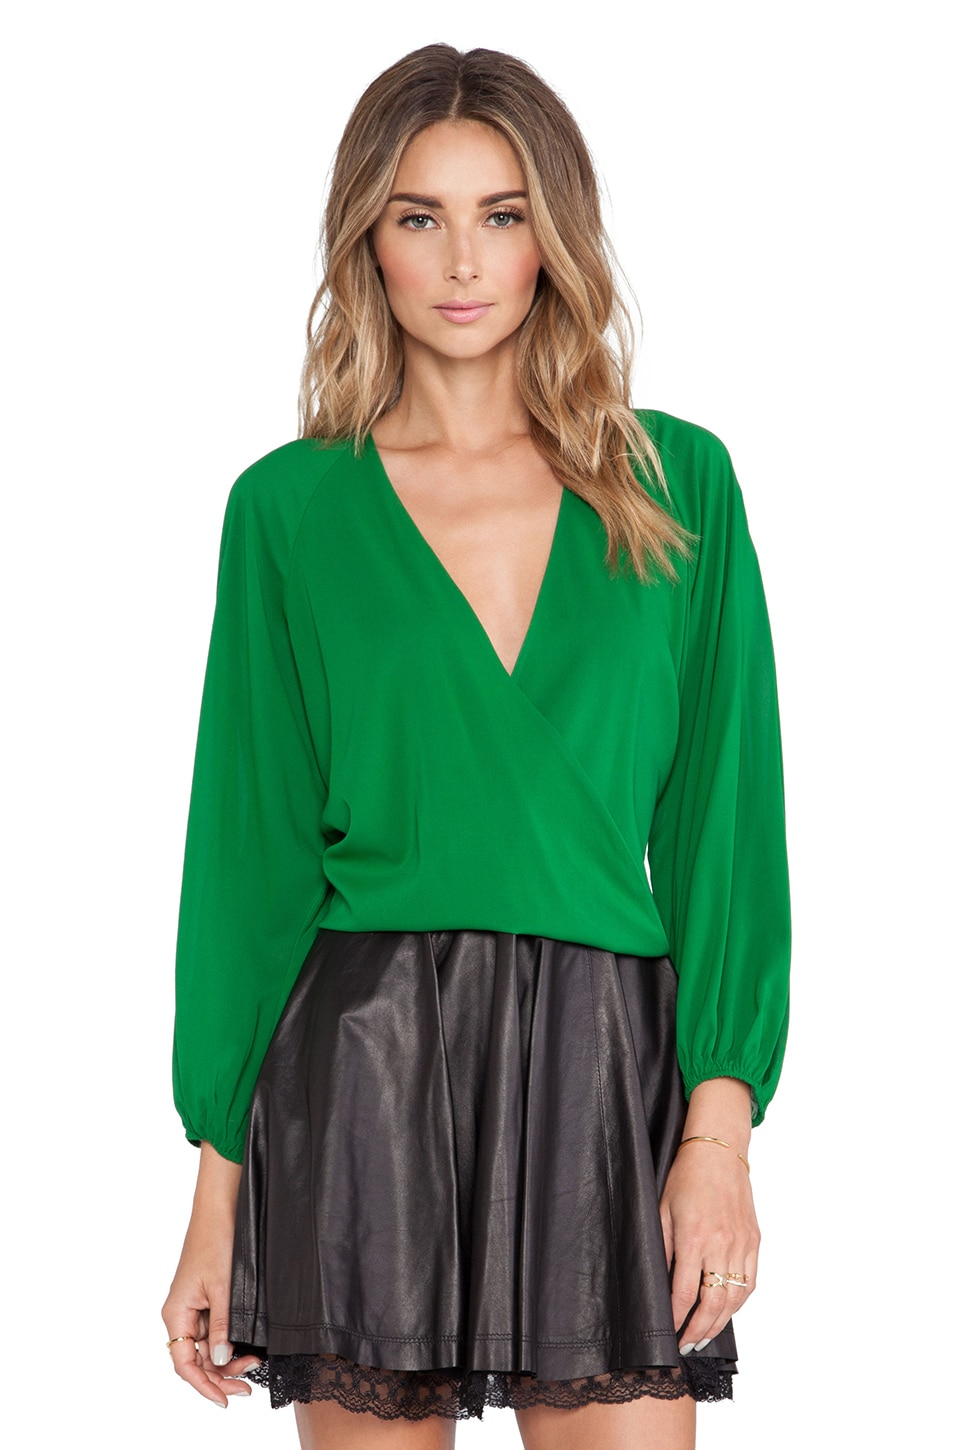 Alice + Olivia Borvo Cross Over Blouse in Emerald